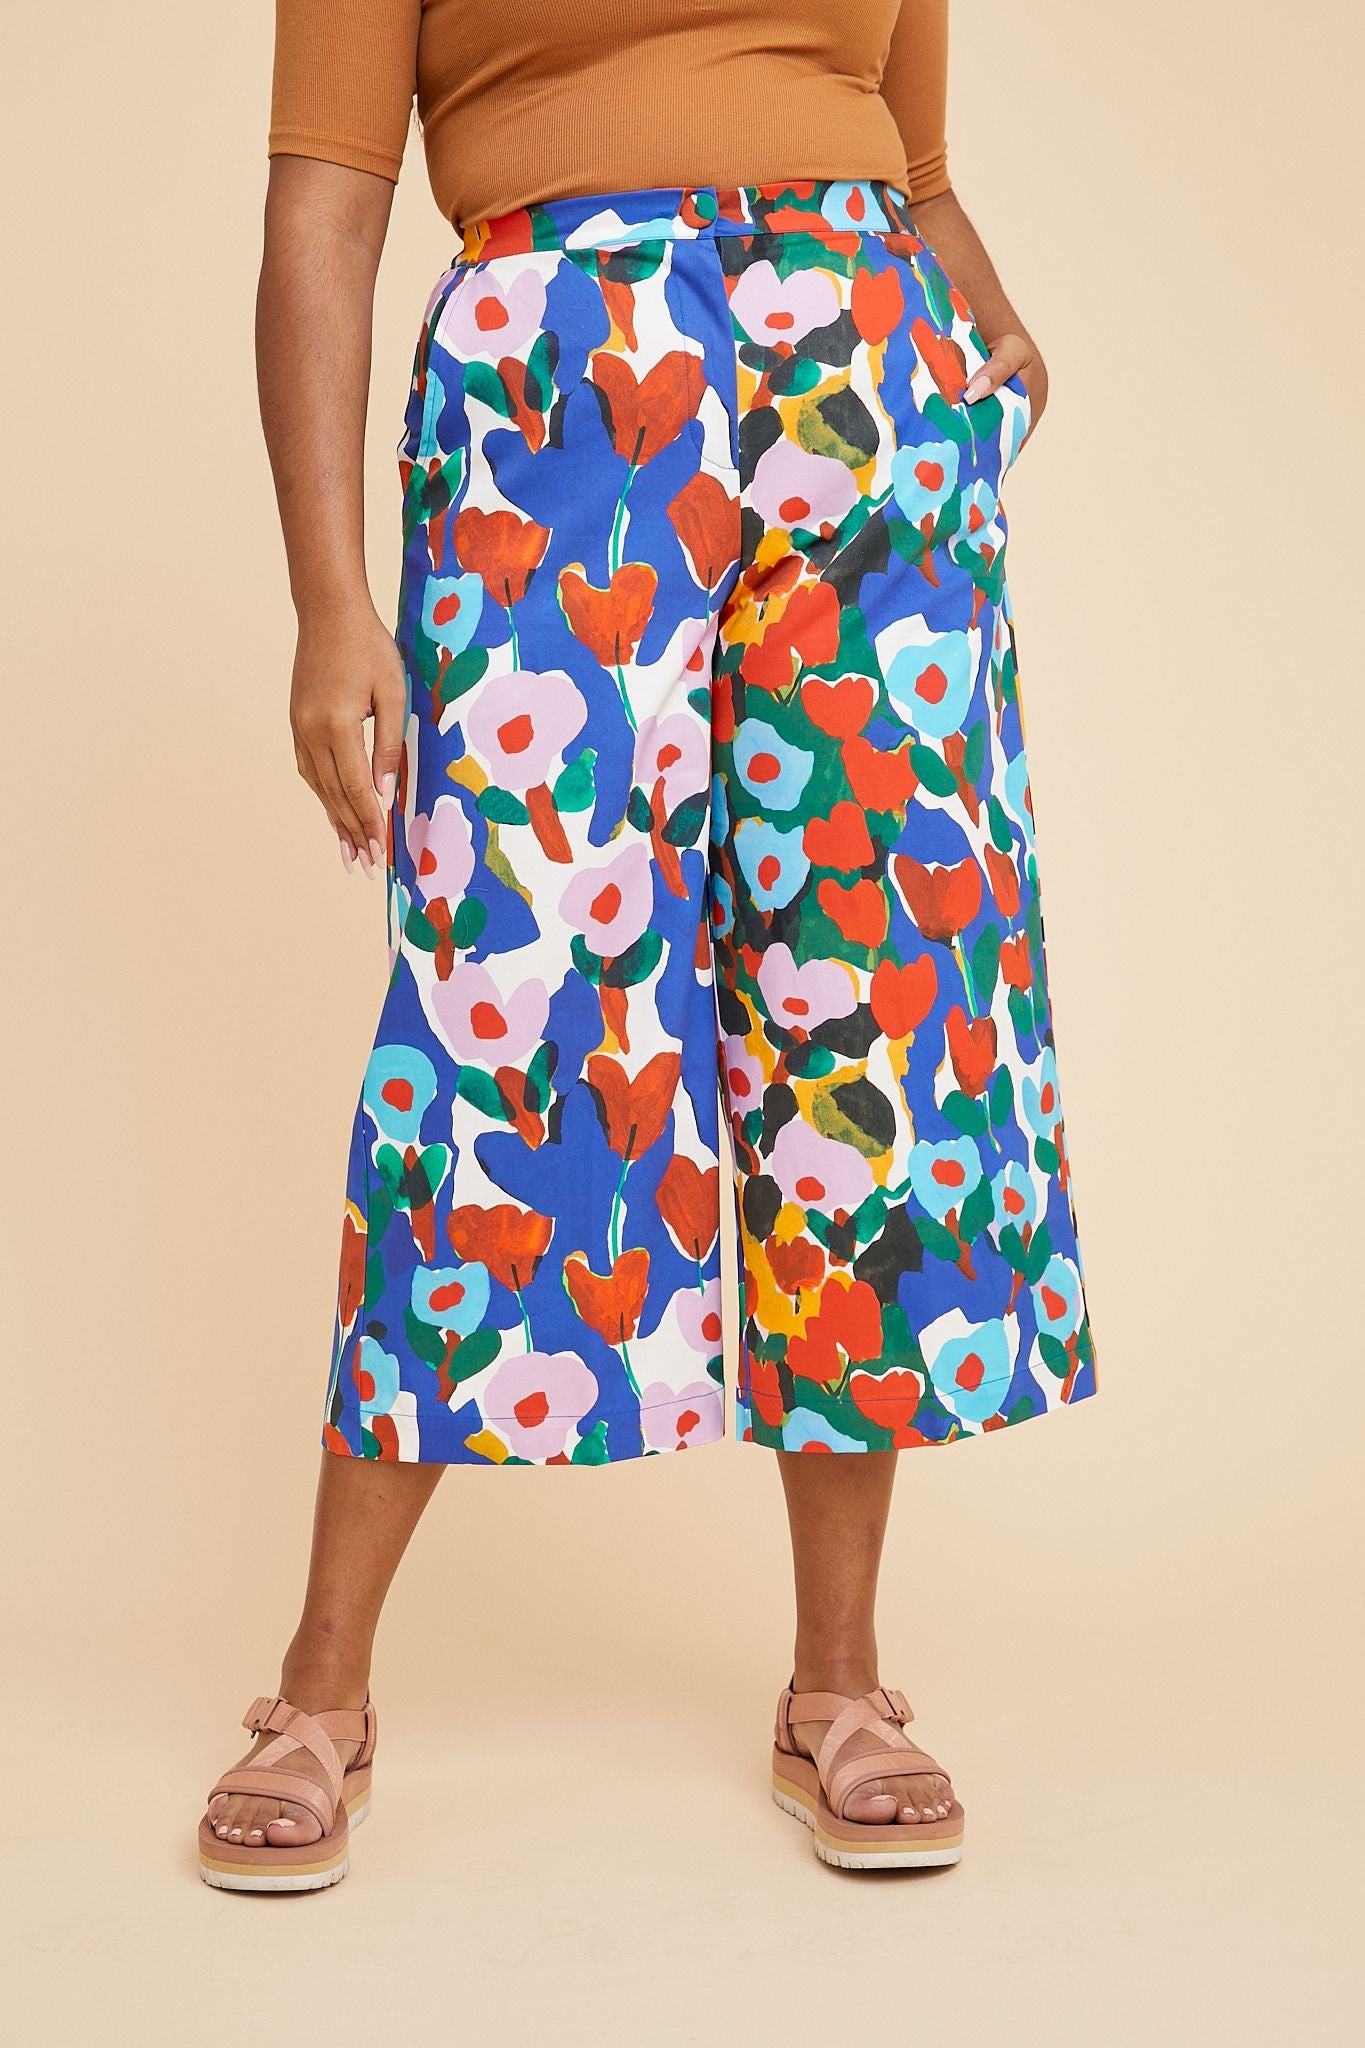 Variety Hour Wide Leg Pant in Tulip Print, Designed by Cassie Byrnes